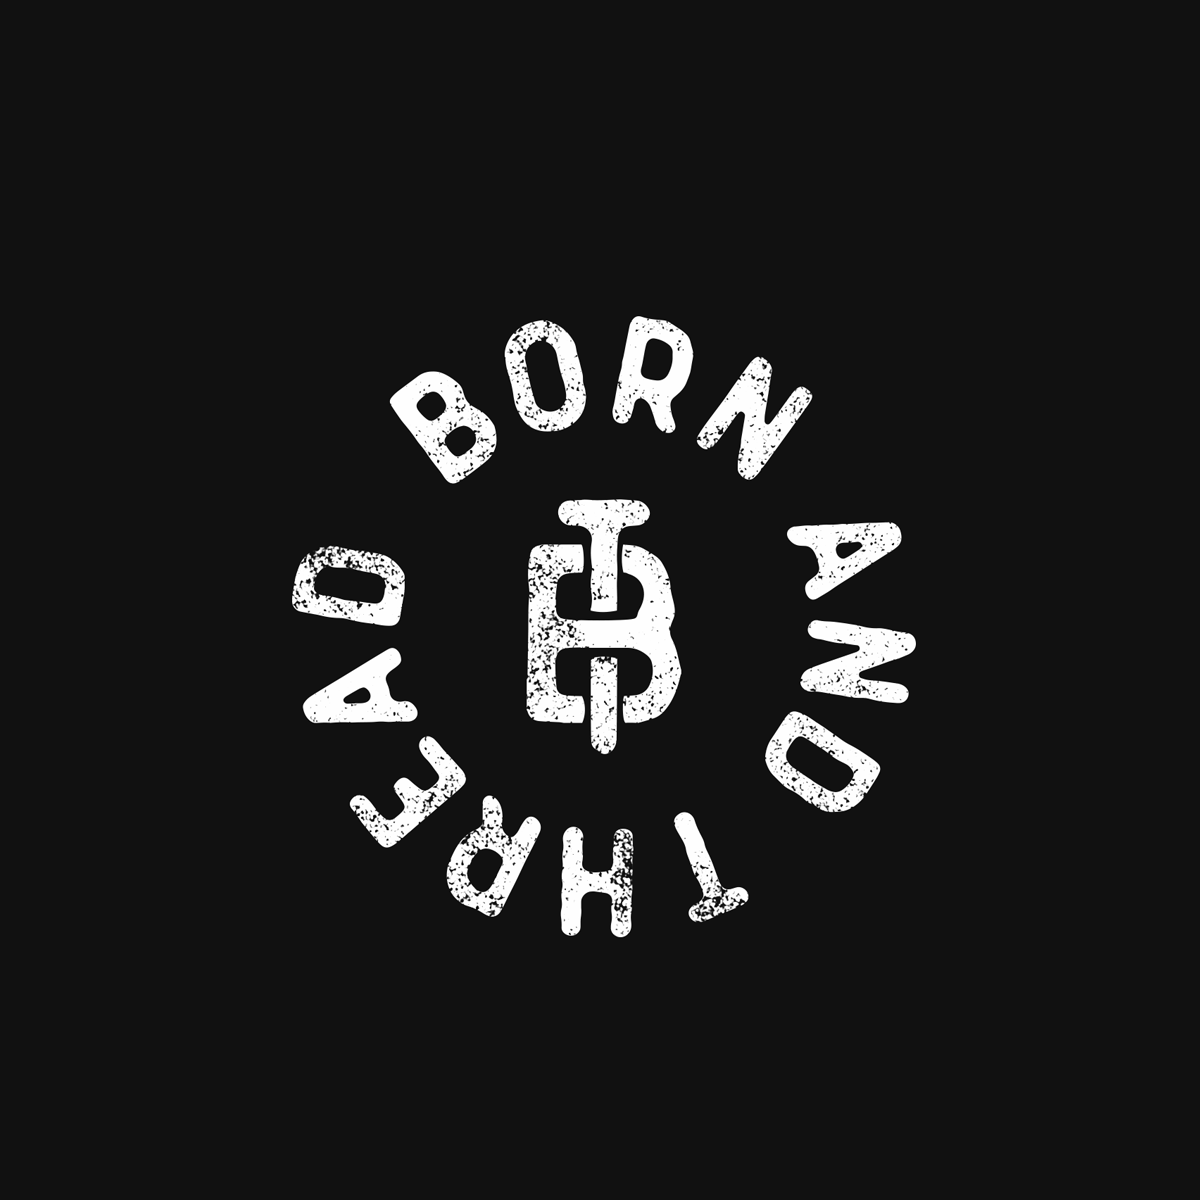 Born and Thread - Branding and Logo Design